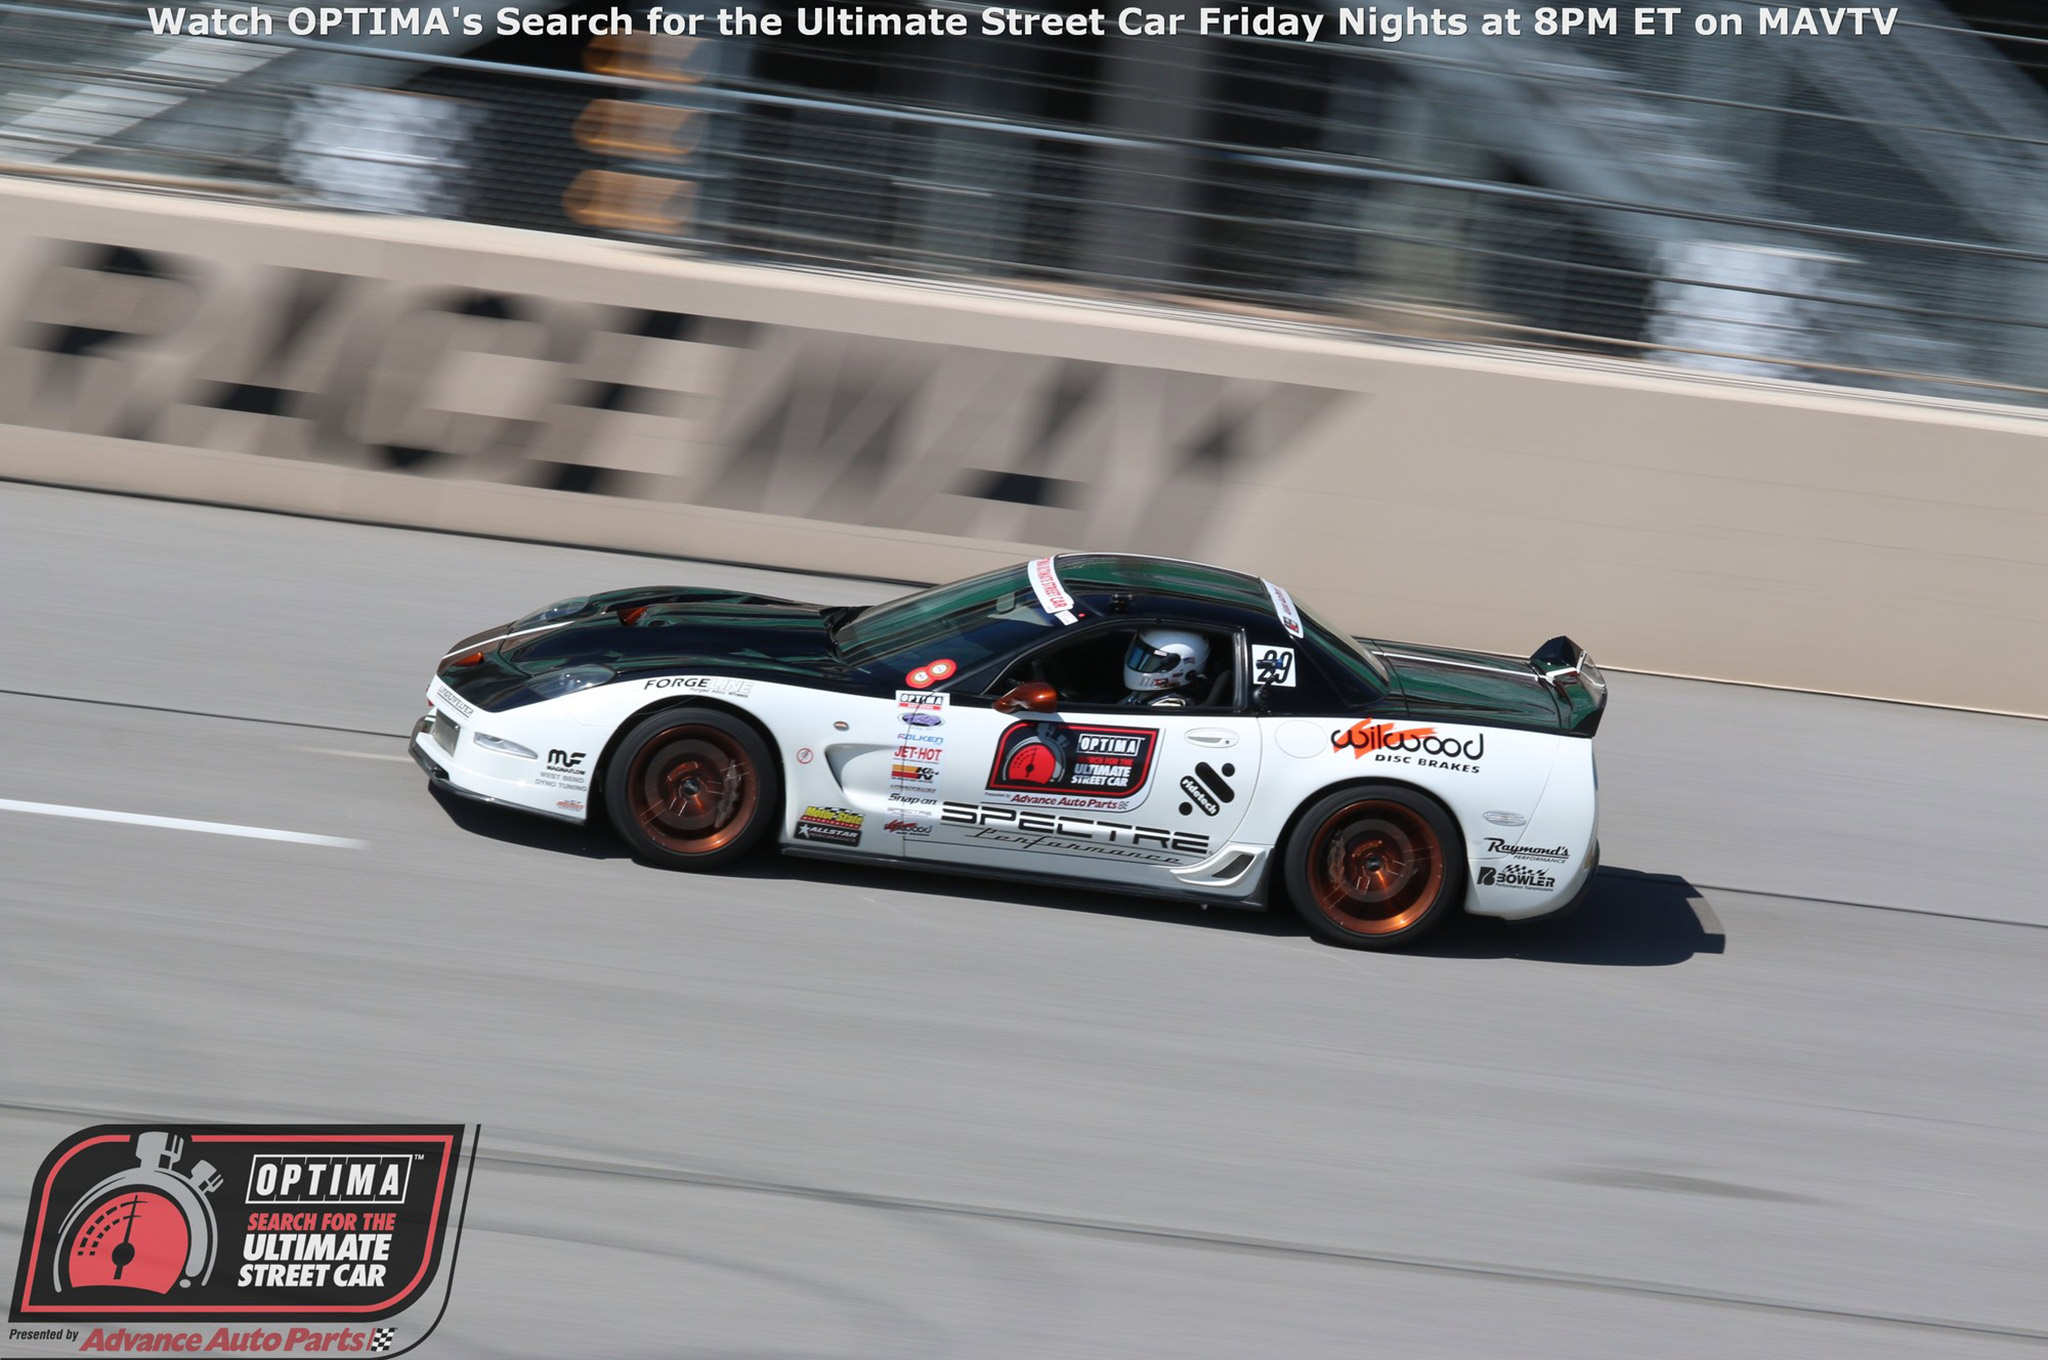 Randy Johnson carried the Chevy flag to the podium in the GTS class, finishing in Third Place behind a pair of Evos in his D&Z Customs-built 2002 Corvette.